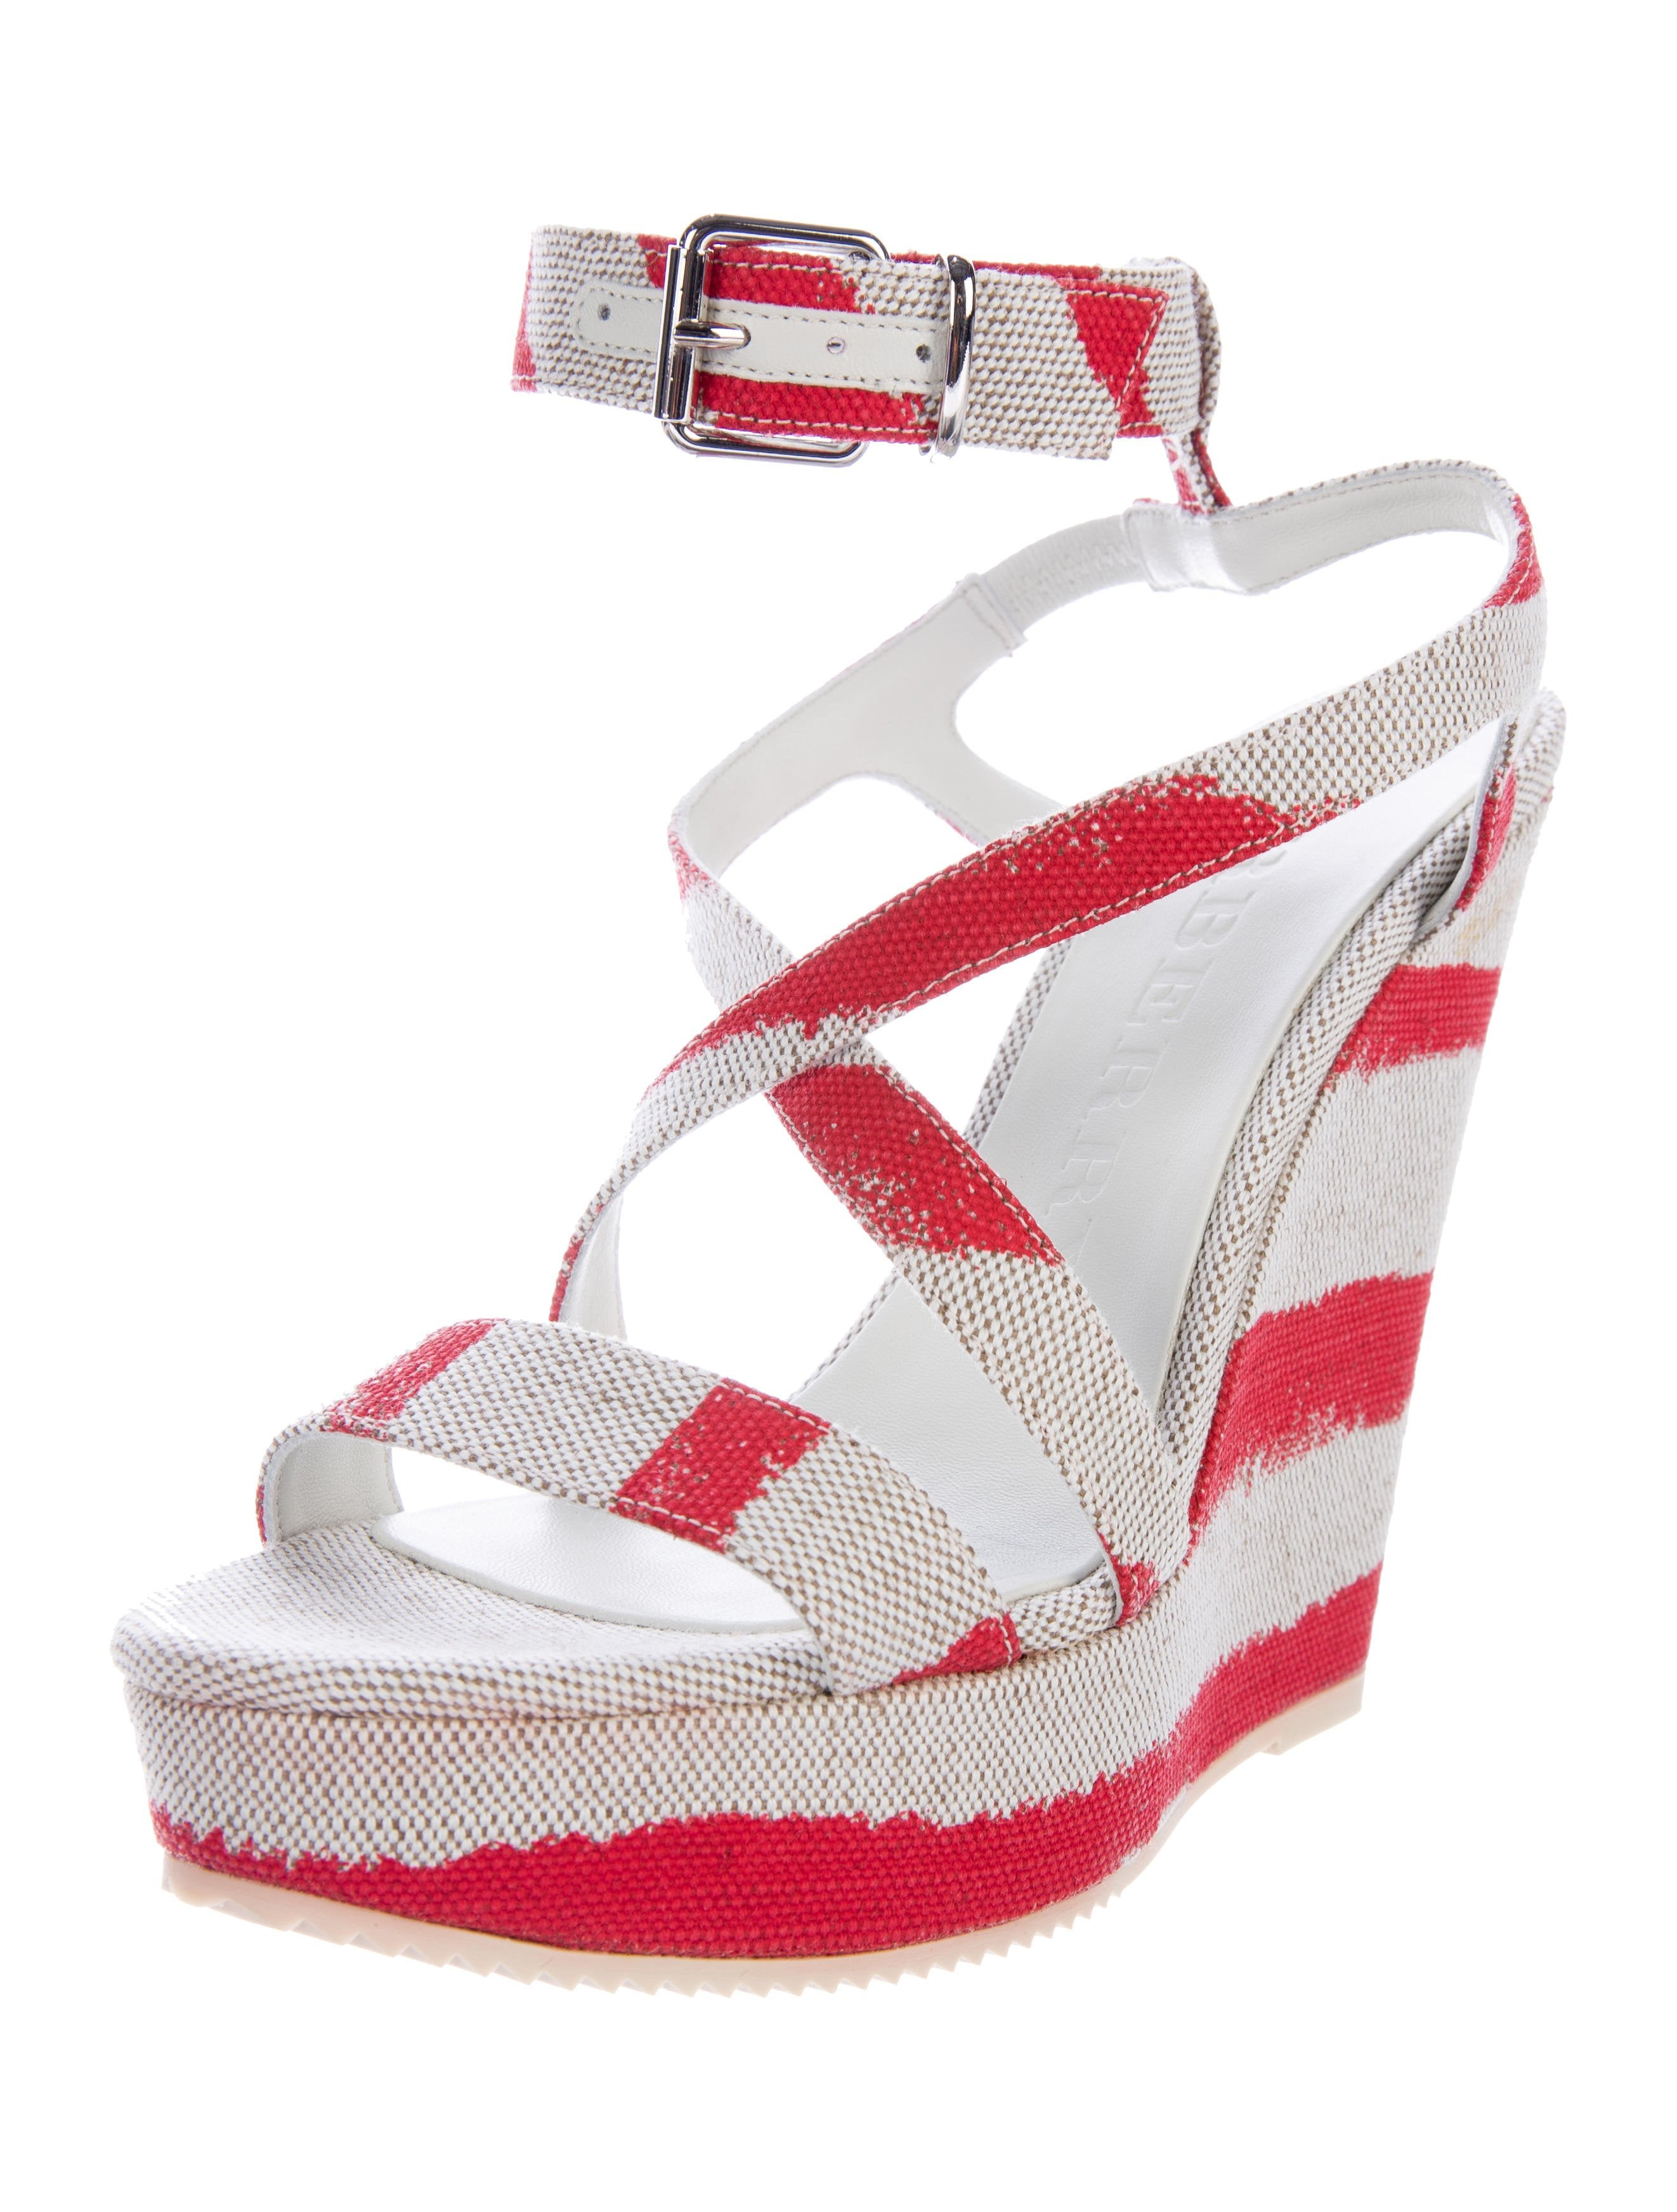 pay with visa online buy cheap manchester great sale Burberry Farrah Wedge Sandals w/ Tags very cheap price from china cheap online ITeZvk